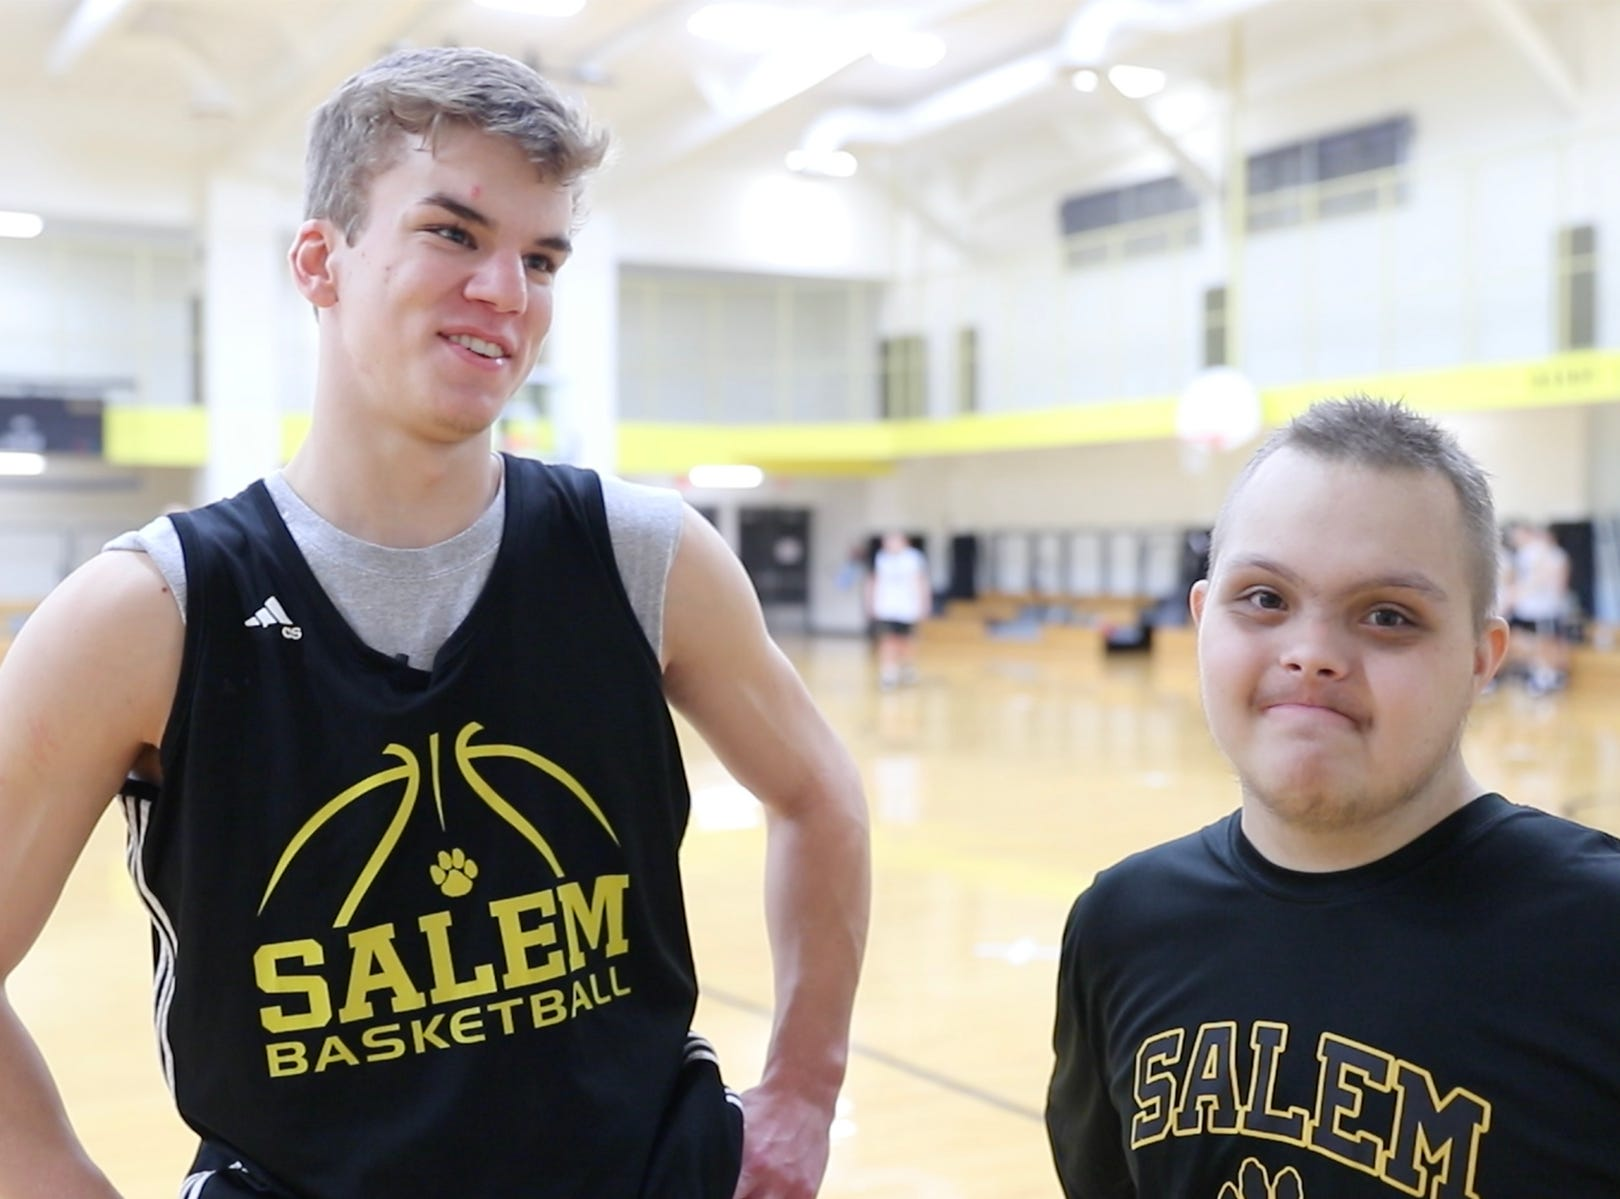 Salem High School Boys Basketball player Brandon Pepmeier, left, and Jalen Pigg, right, know each other from both thier involvement coaching and participating in the Special Olympics, but now Jalen's step dad, Mike Brown is also the Salem High School Boys Basketball Coach at Salem High School in Salem Ind. on Tuesday, Jan. 23, 2019. Jalen, who was born with Down Syndrome, is now battling a form of leukemia but has a lot of support from the team and his loving family.